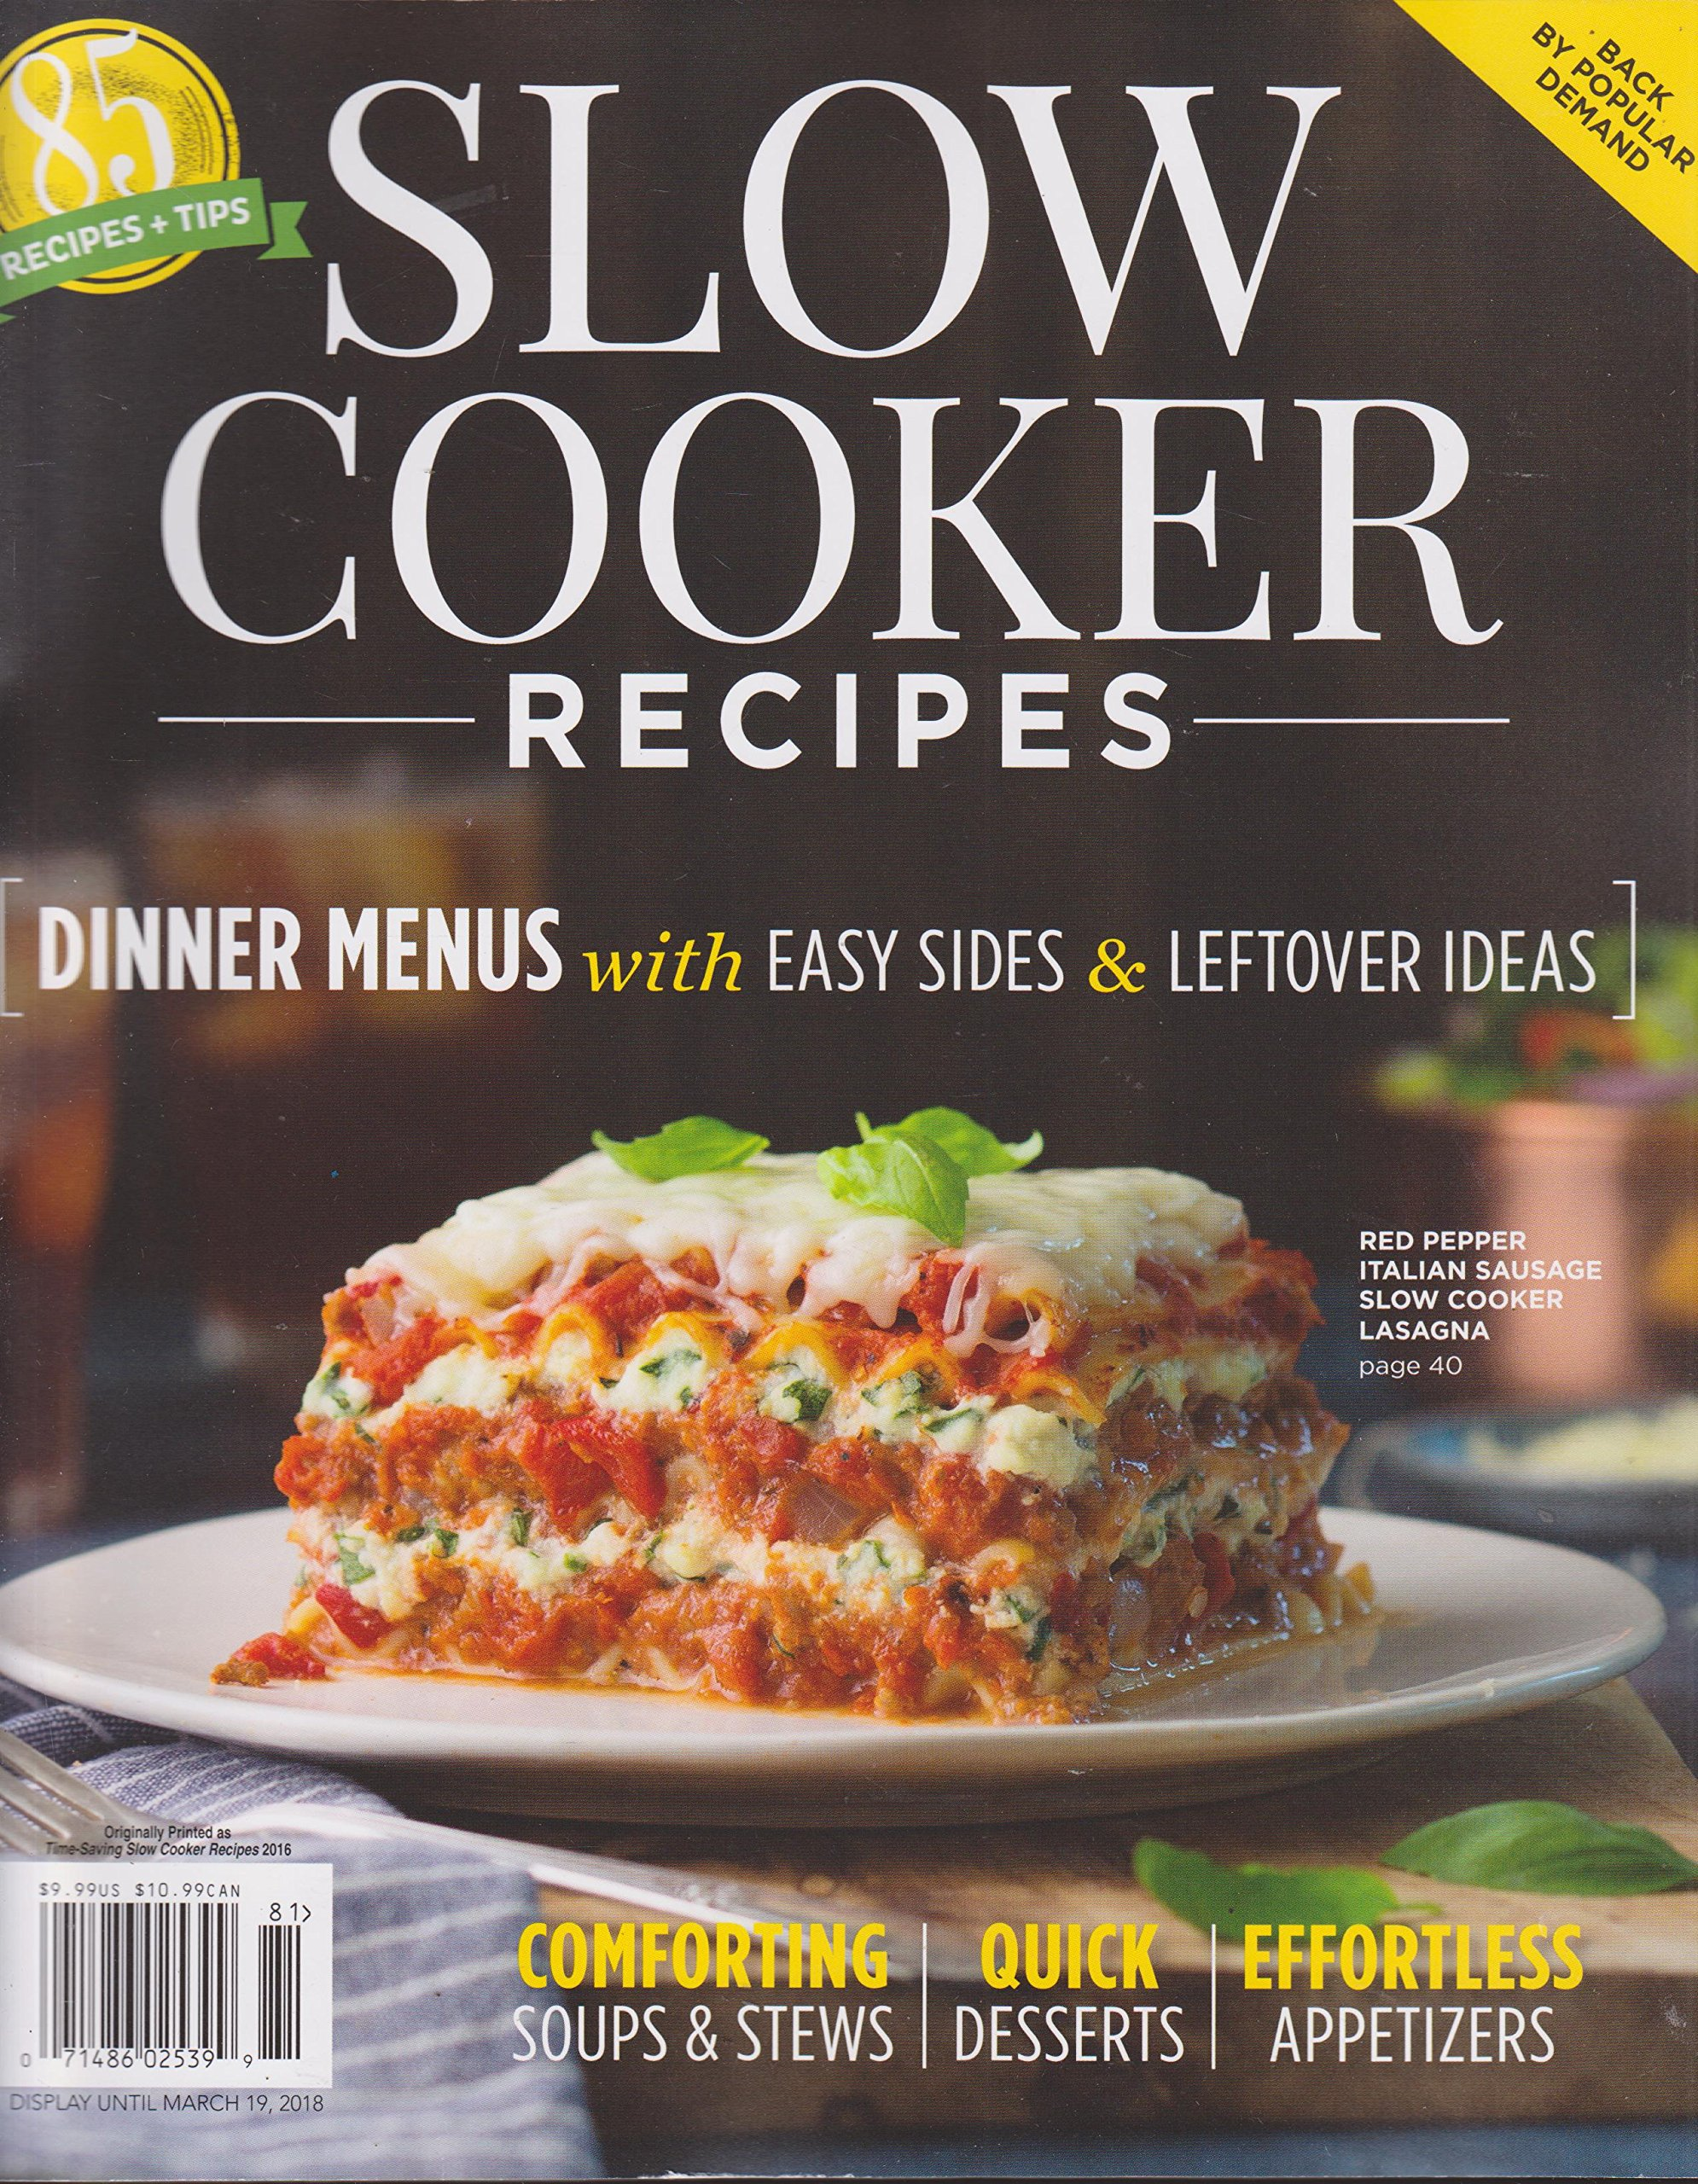 Hoffman Media Slow Cooker Recipes 2018 (85 Recipes+Tips) pdf